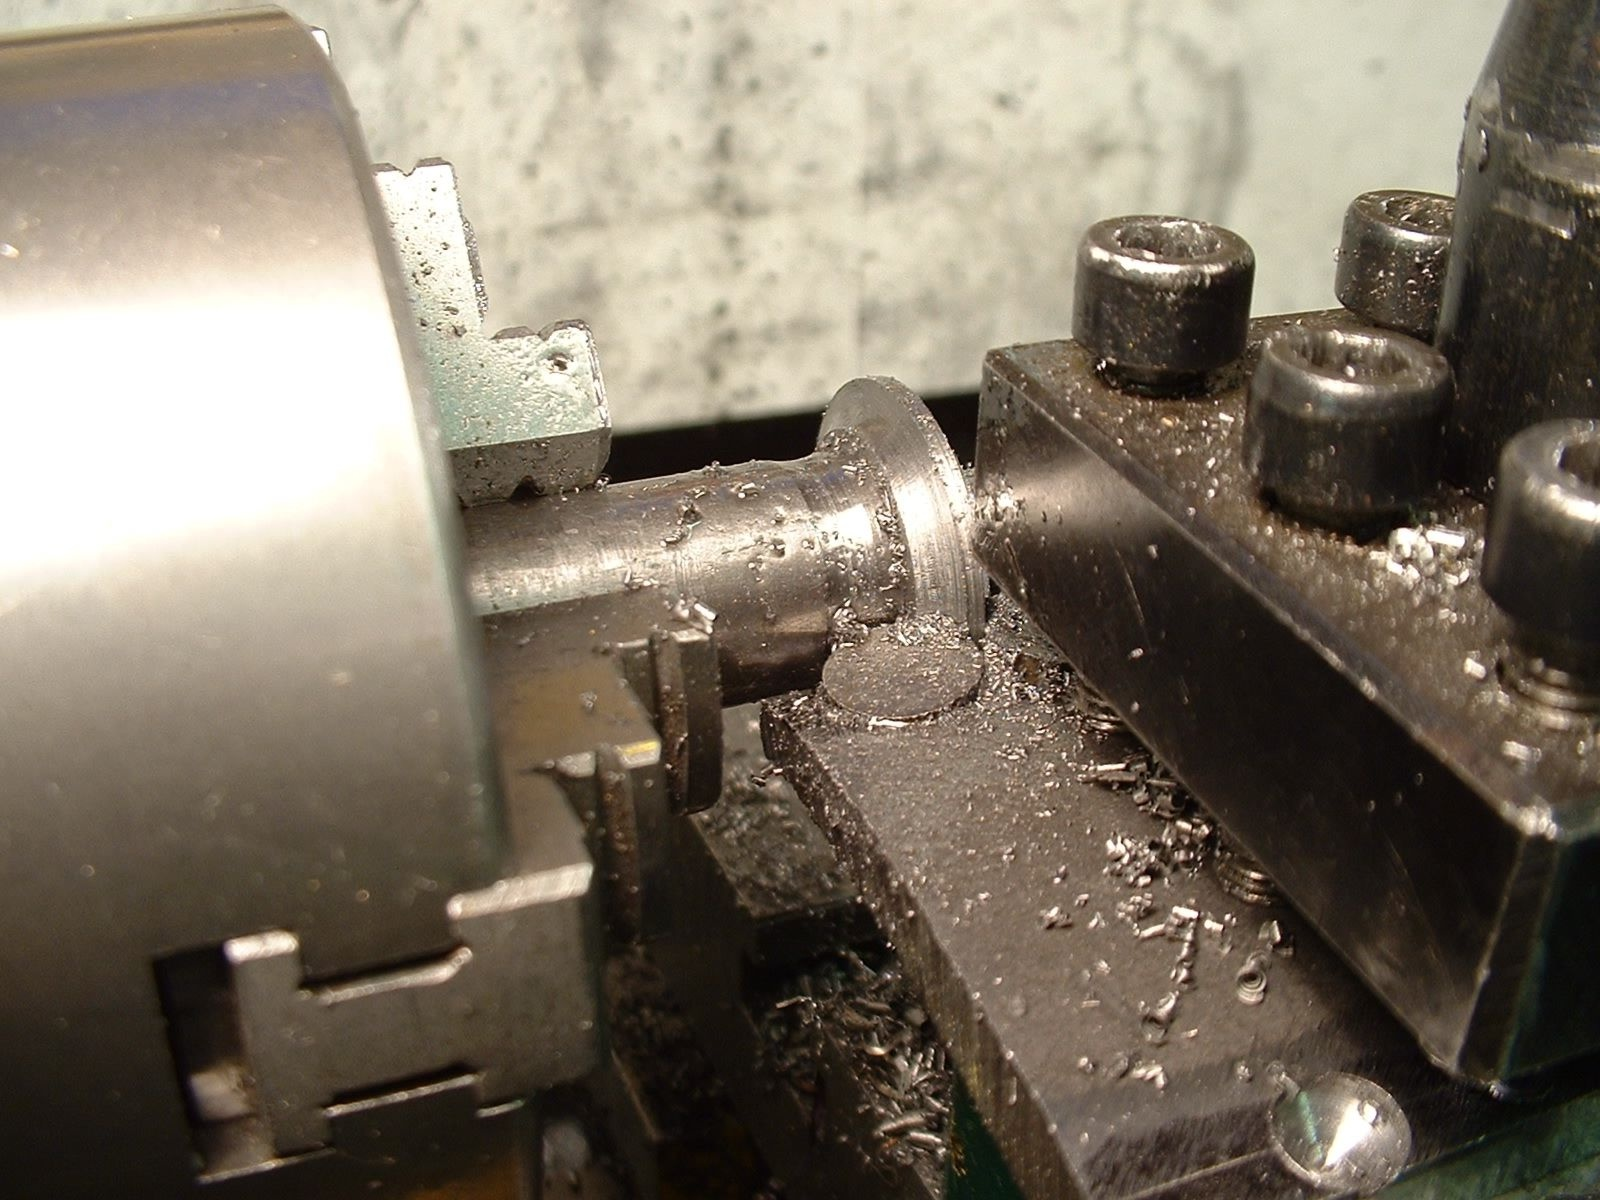 Making a gear cutter